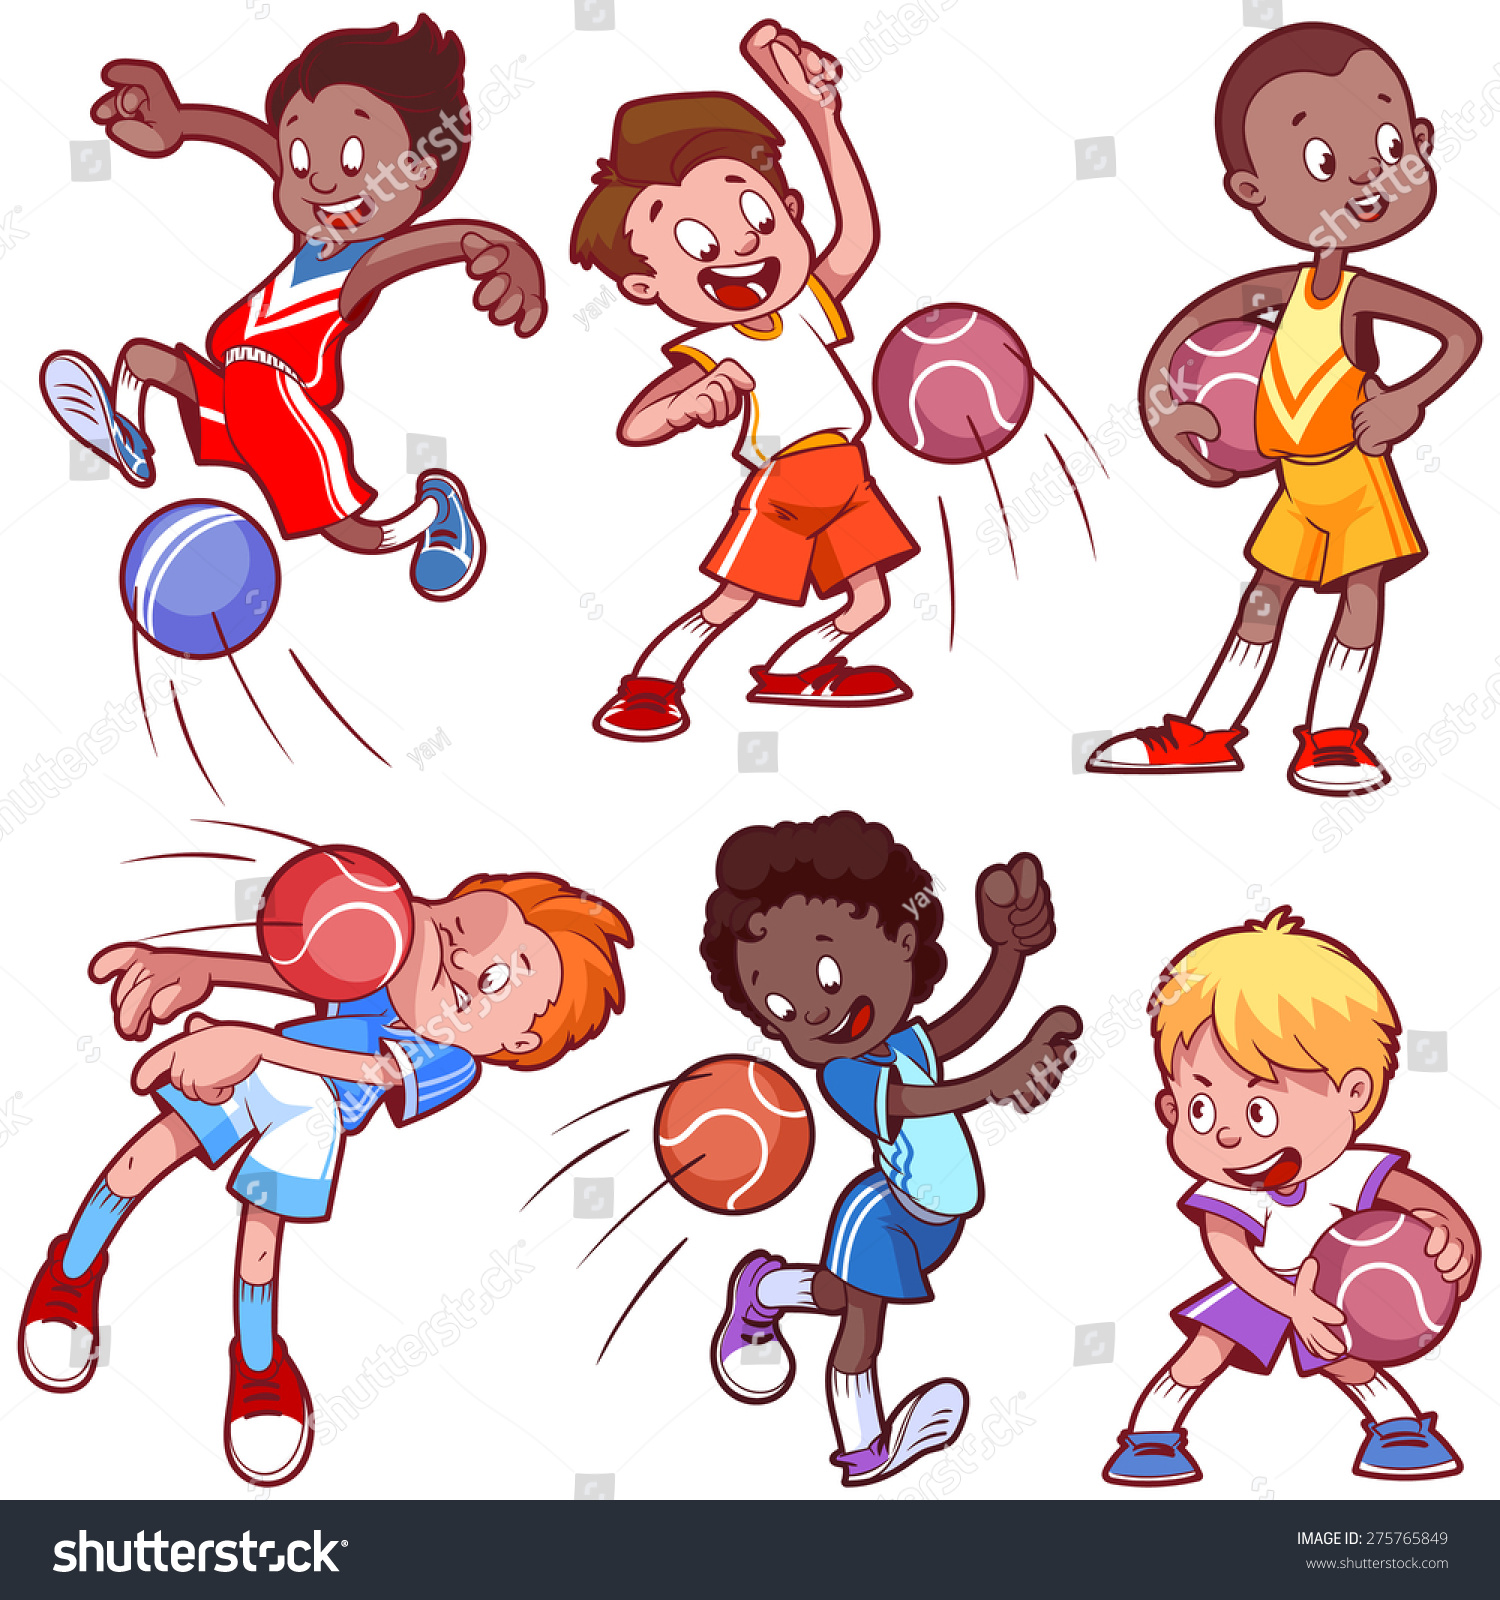 Cartoon Boys Playing Dodgeball Vector Clip Stock Vector 275765849 - Shutterstock